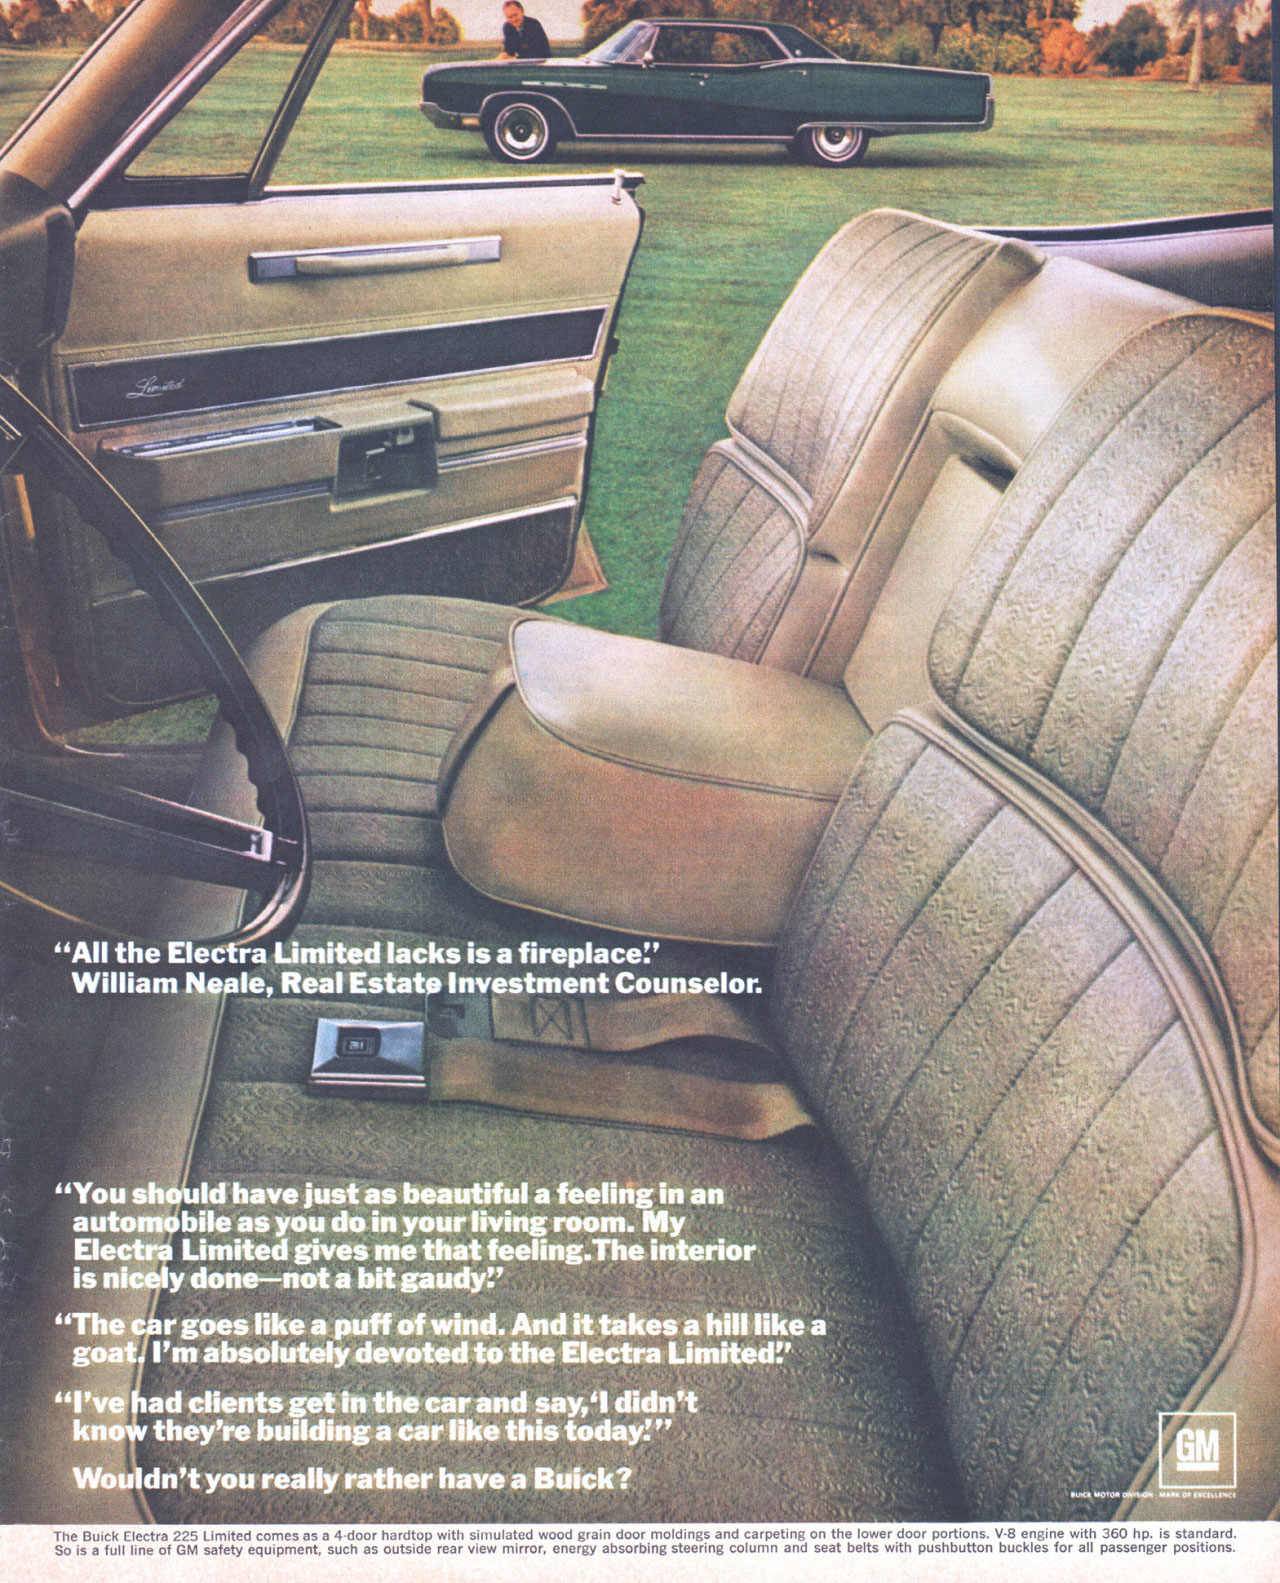 ''All the Buick Electra 225 Limited lacks is a fireplace.'' William Neale, Real Estate Investment Counselor.  ''You should have just as beautiful a feeling in an automobile as you do in your living room. My Electra Limited gives me that feeling.The interior is nicely done—not a bit gaudy!' ''The car goes like a puff of wind. And it takes a hill like a goat. I'm absolutely devoted to the Electra Limited!' ''I've had clients get in the car and say,'I didn't know they're building a car like this today:'' Wouldn't you really rather have a Buick?  The Buick Electra 225 So is a full line of GM tiaT:t;,de'iri',1;.eEr',1,astcdt-nrshoaurtds1(c),:;''elir!,,,i':,',1,1,Vo'7,°:nderTra'bt%irnirsTeneggng:L%,Prrarri,t'sneltiebte7sier,,,i1r,r)ifs?,11.7:;,',;?,:krilgnfeoraVg'slf,!,toasrg:g: